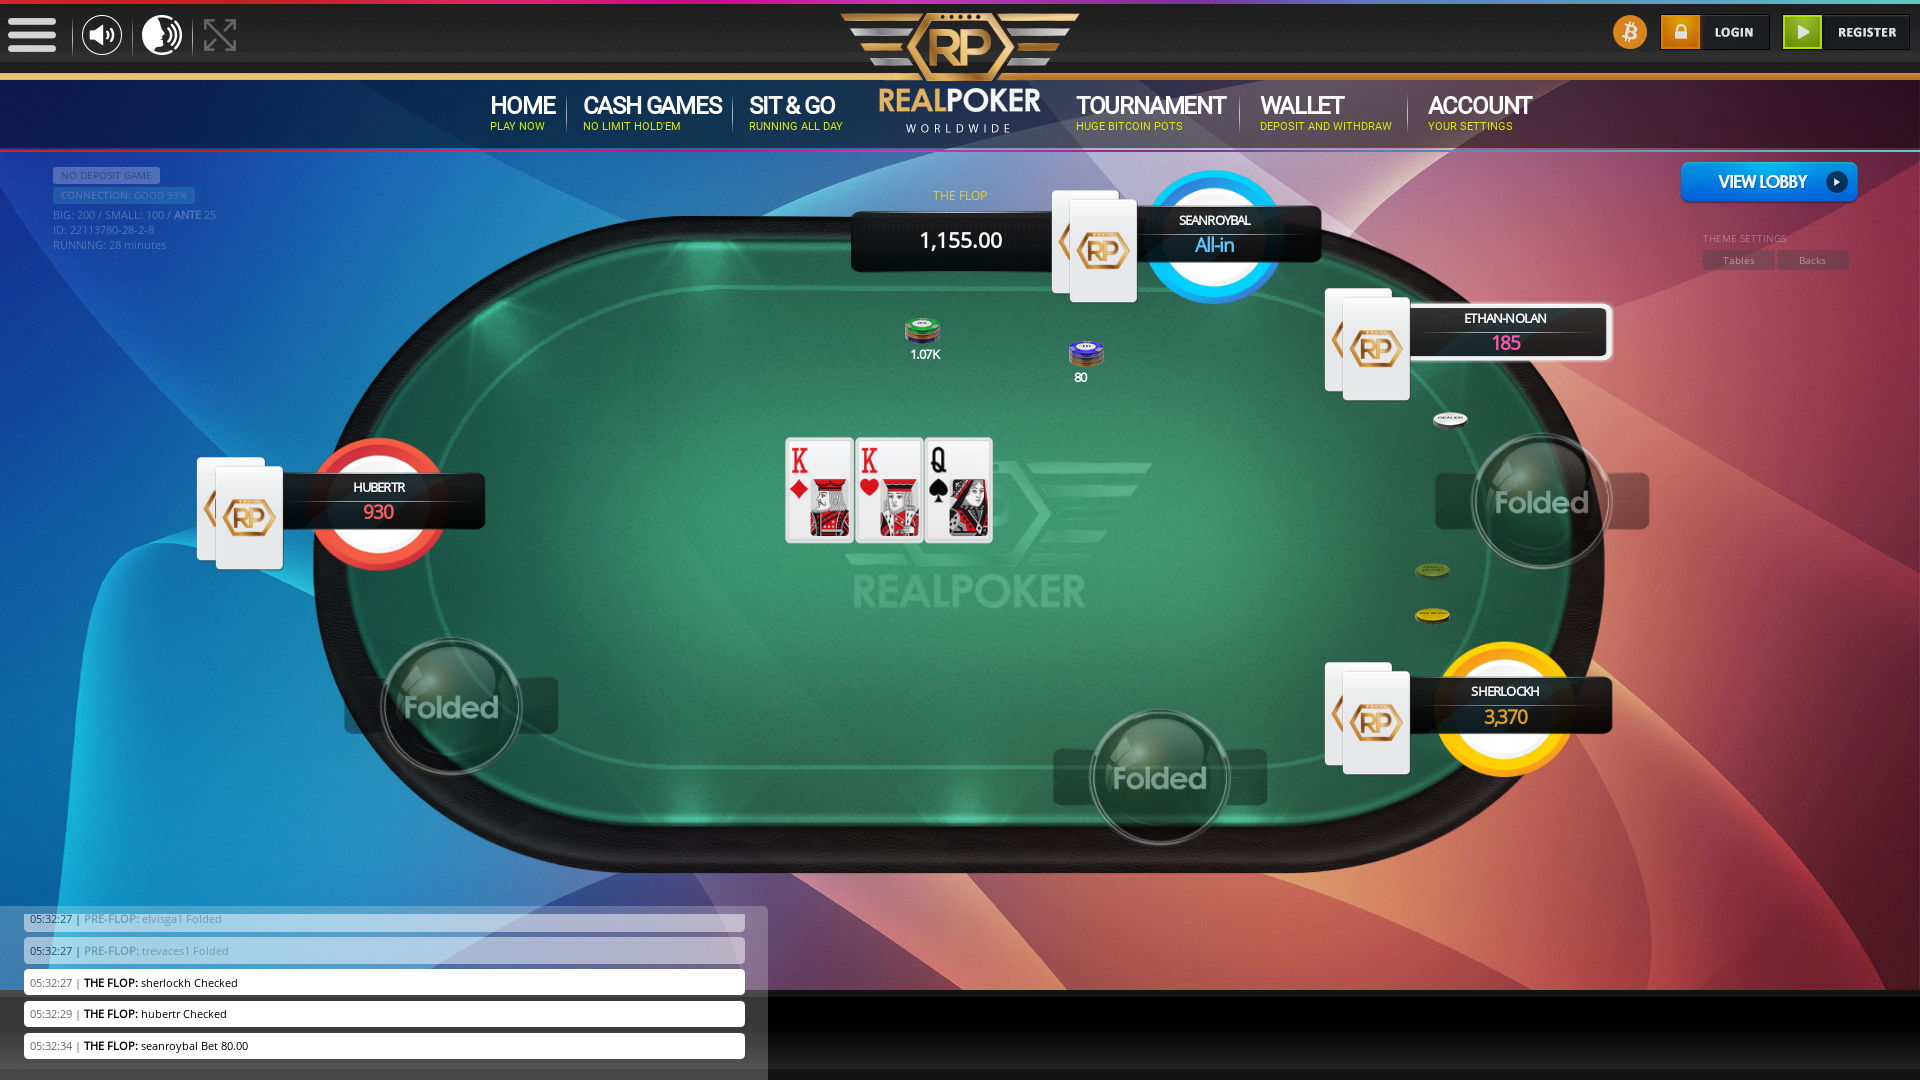 Real poker 10 player table in the 28th minute